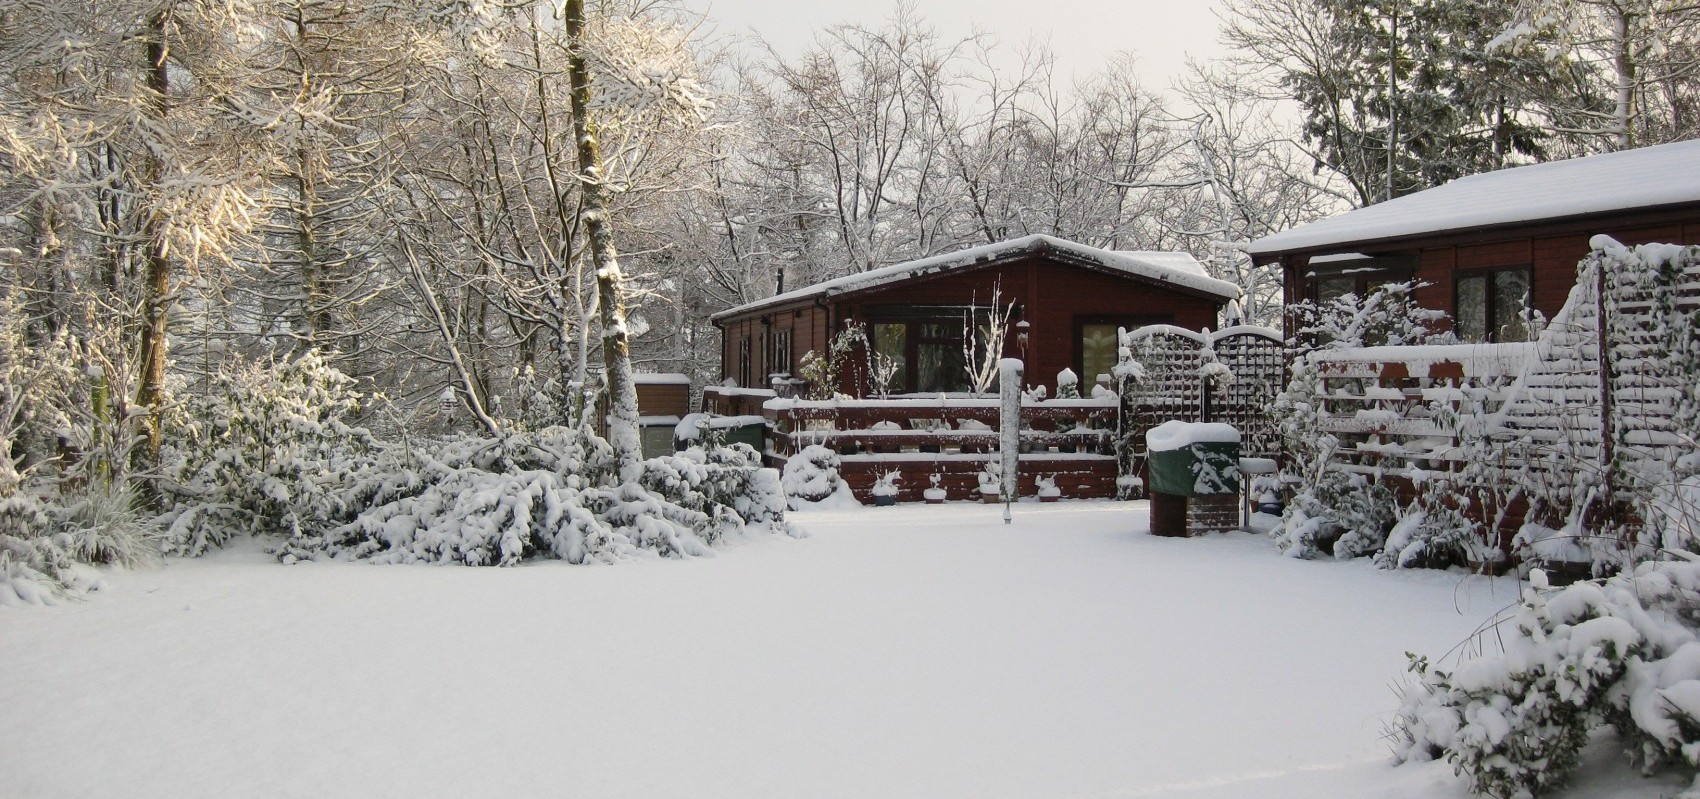 Allerton Holiday Park in Snow